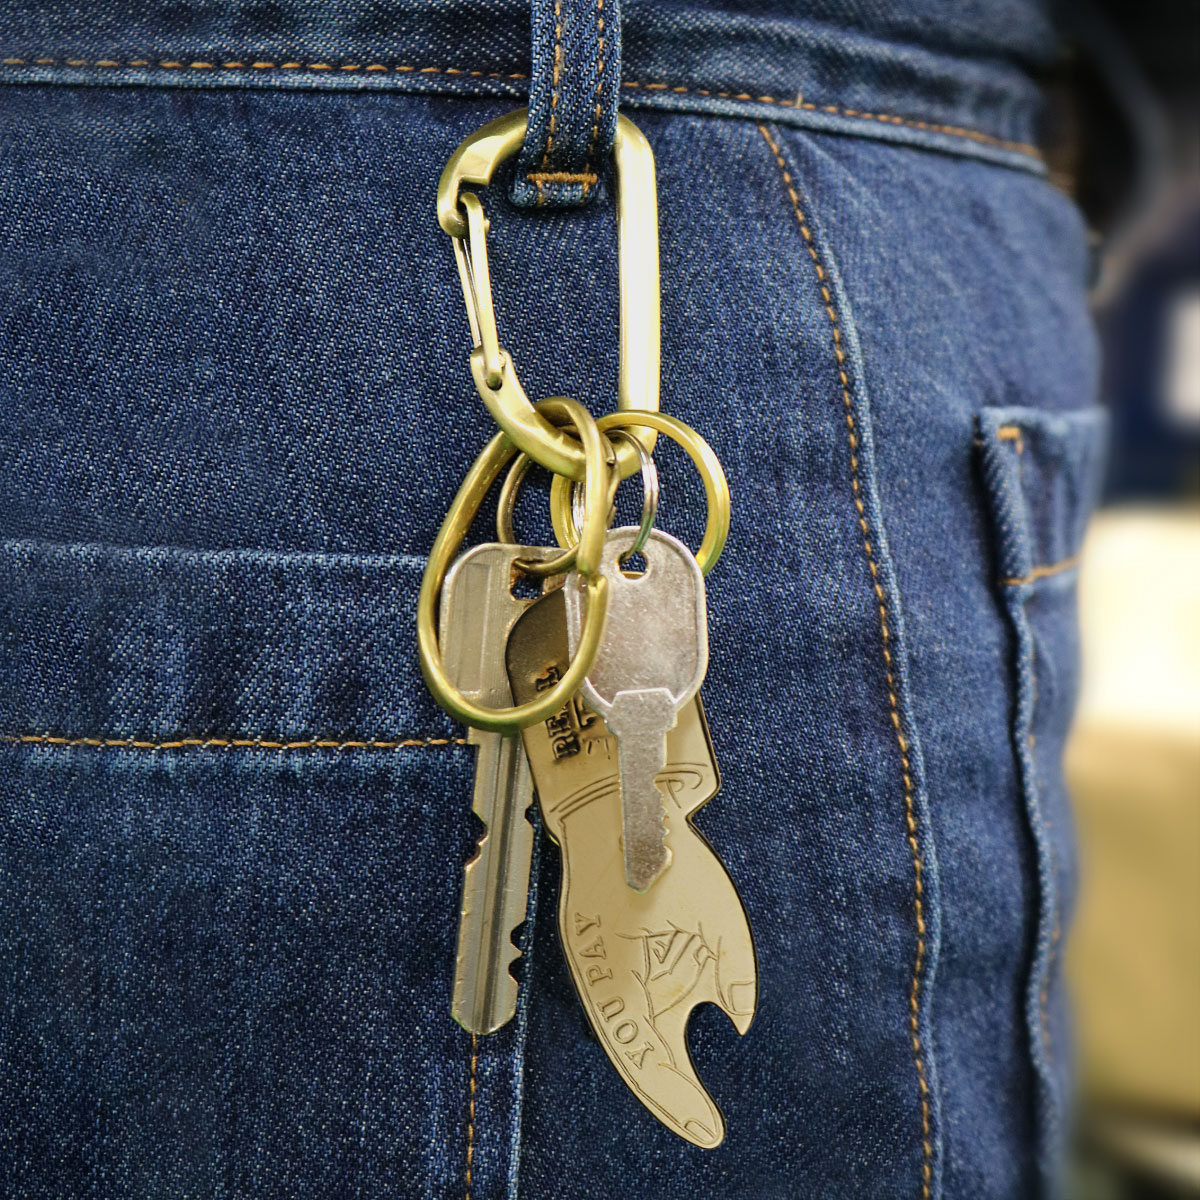 YOU PAY KEYCHAIN